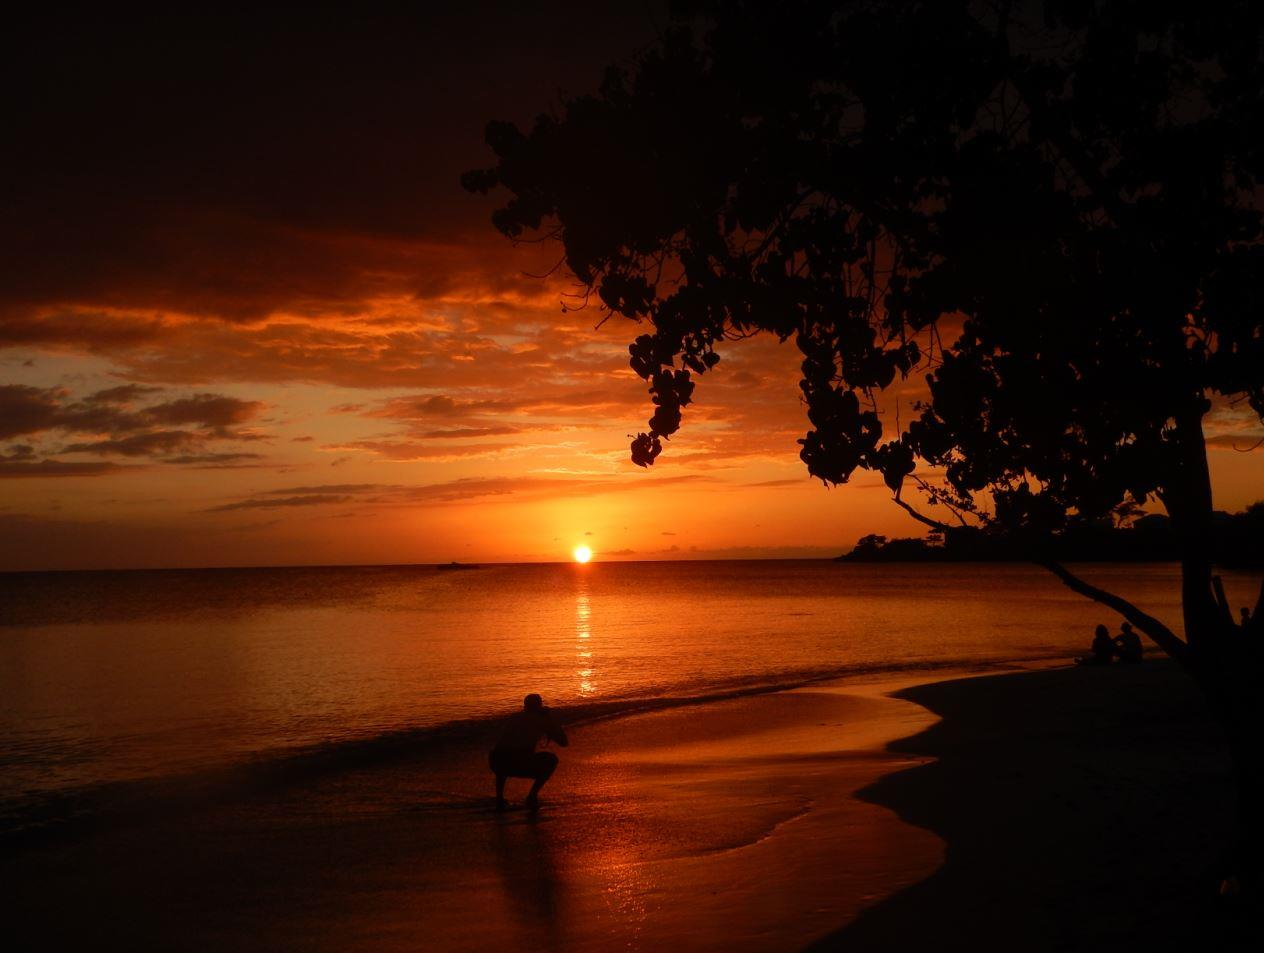 Sunset - Riu Club Negril, Jamaica